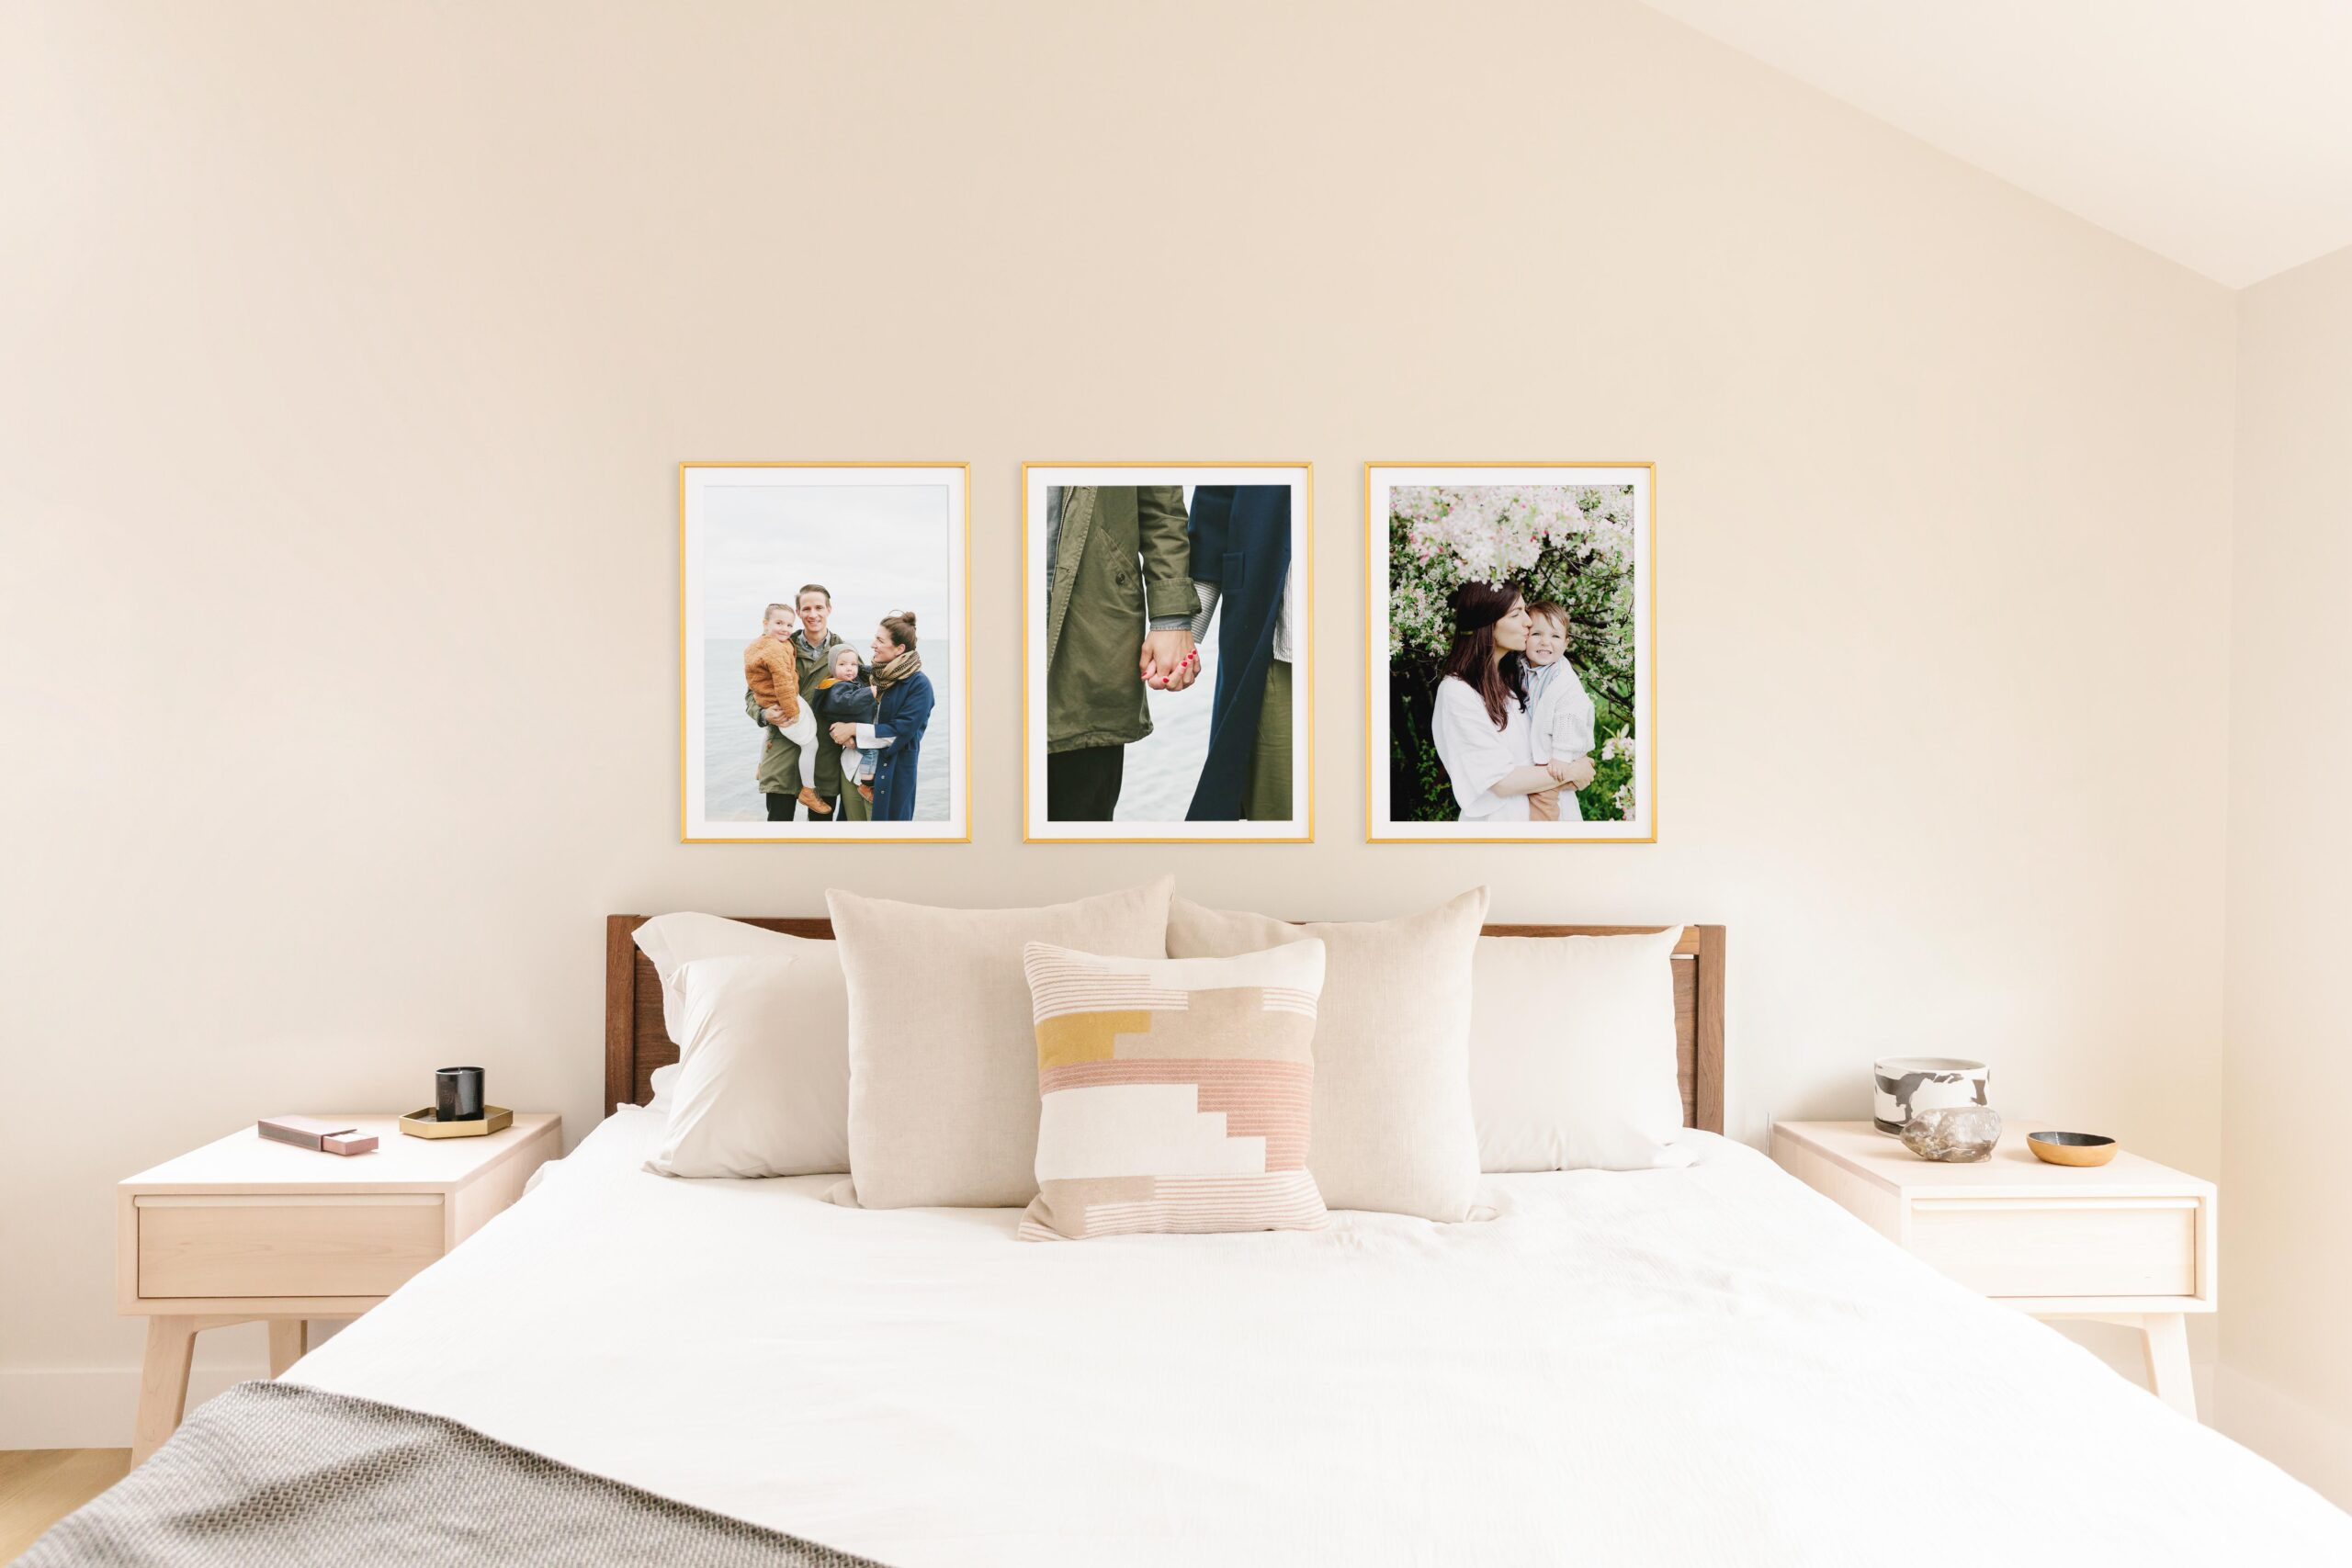 20190321-mothers-day-lifestyle-brass-modern-frames-above-bed-33